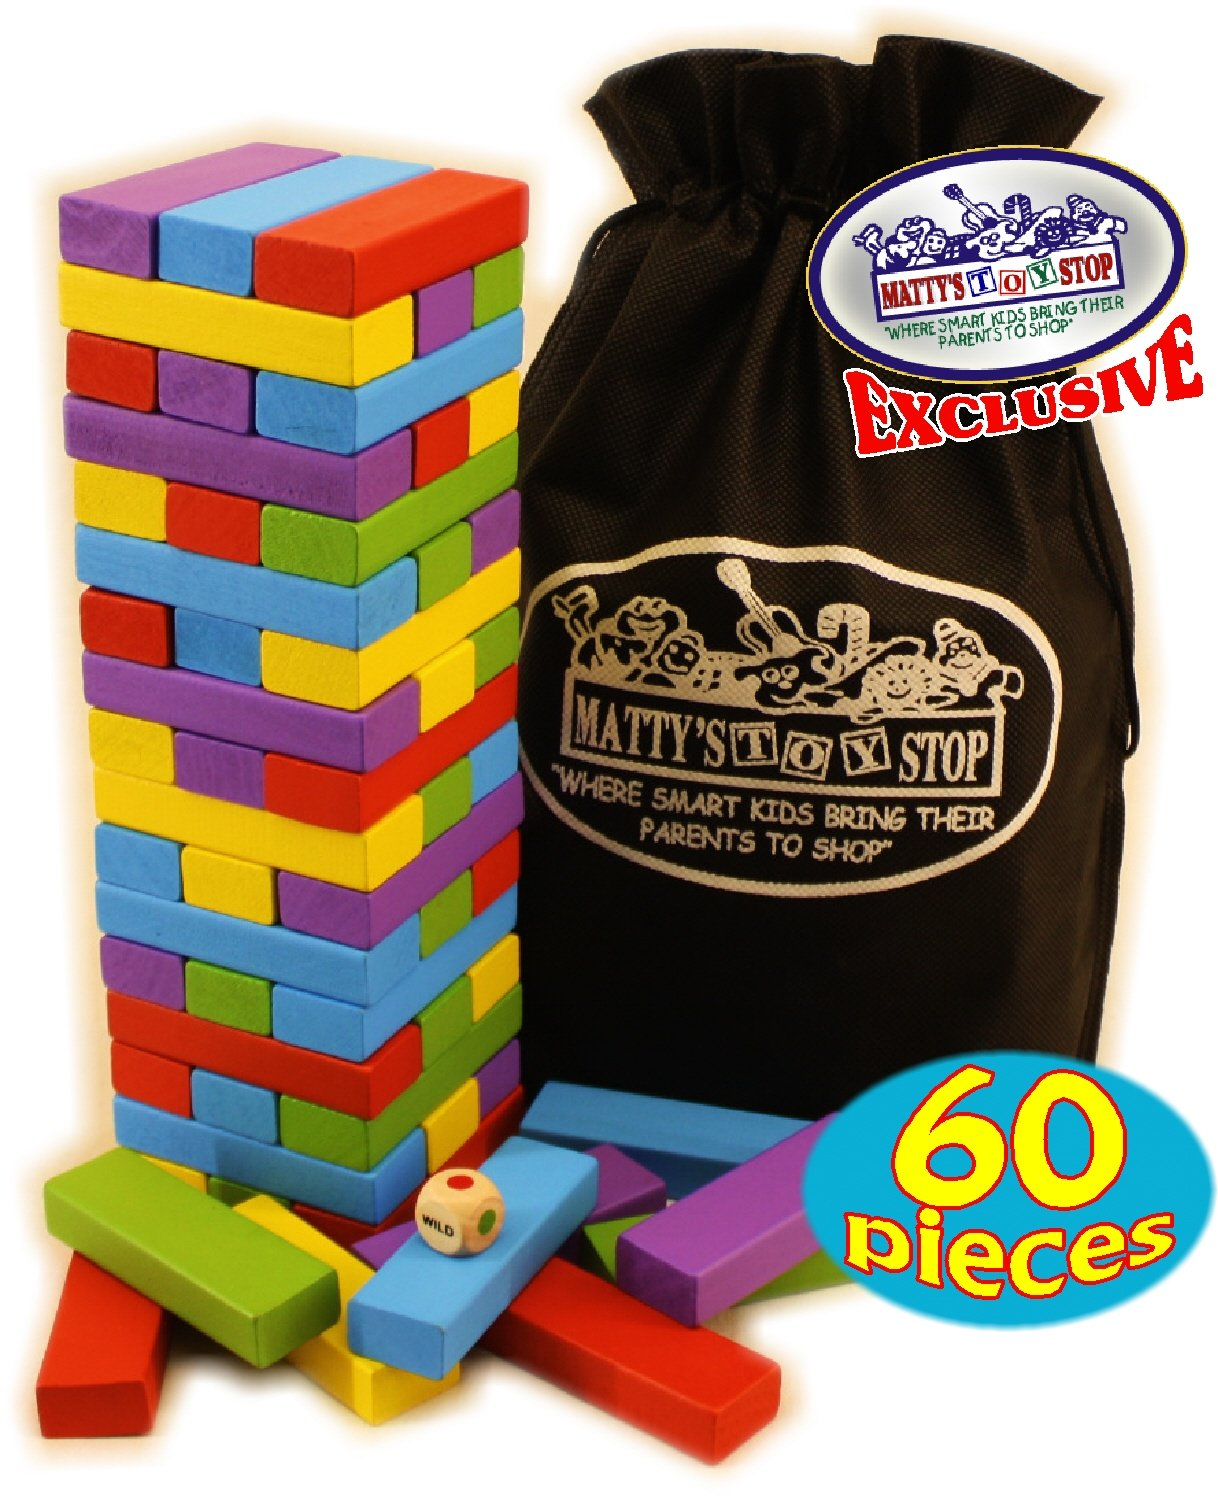 Jenga Game Giant Yard Big Large Wood Block Picnic Party Tower Lawn Outdoor Red